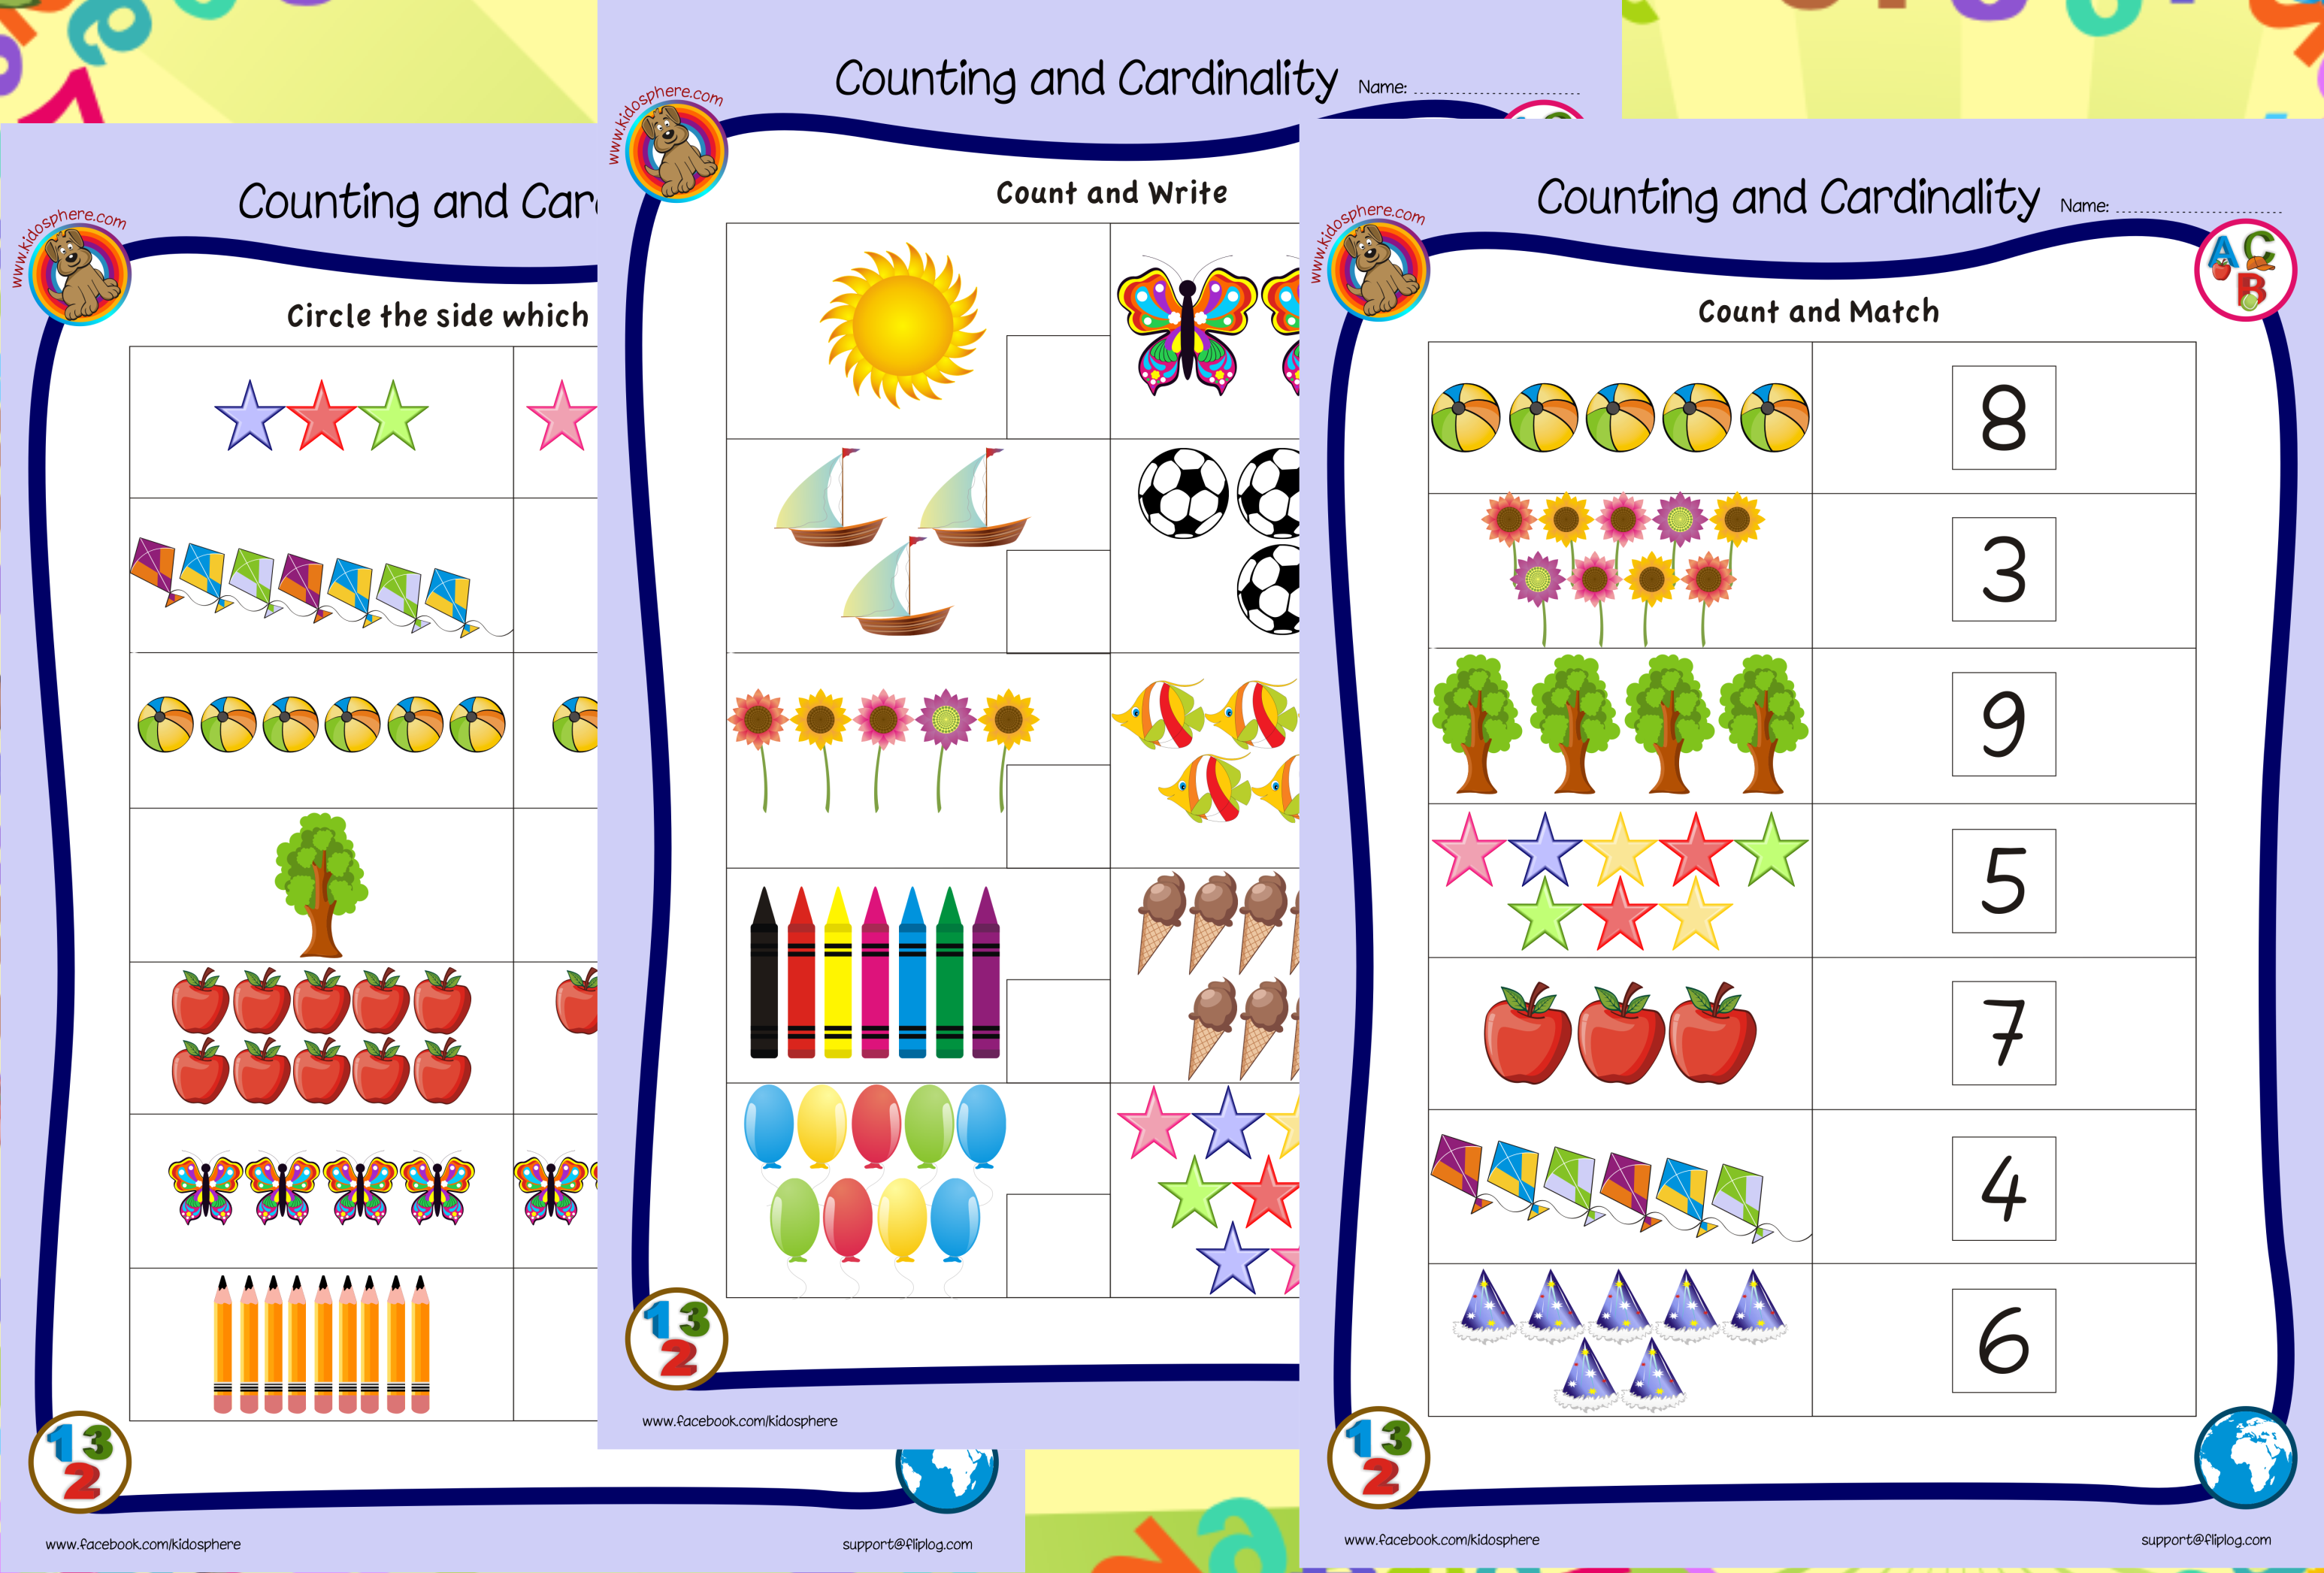 Counting and Cardinality Worksheets | Kidosphere